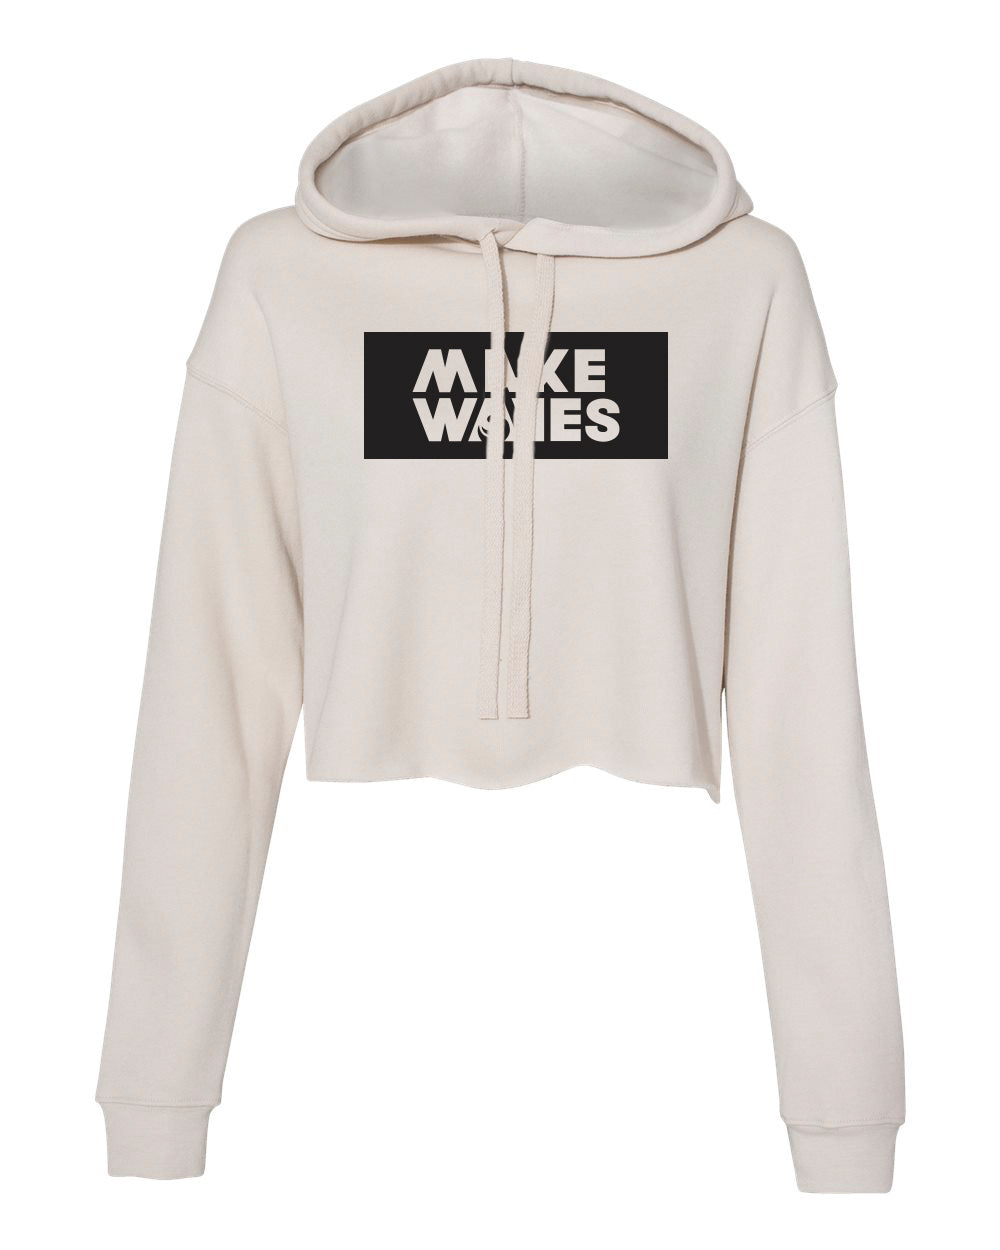 Make Waves - Heather Dust Women's Cropped Hoodie